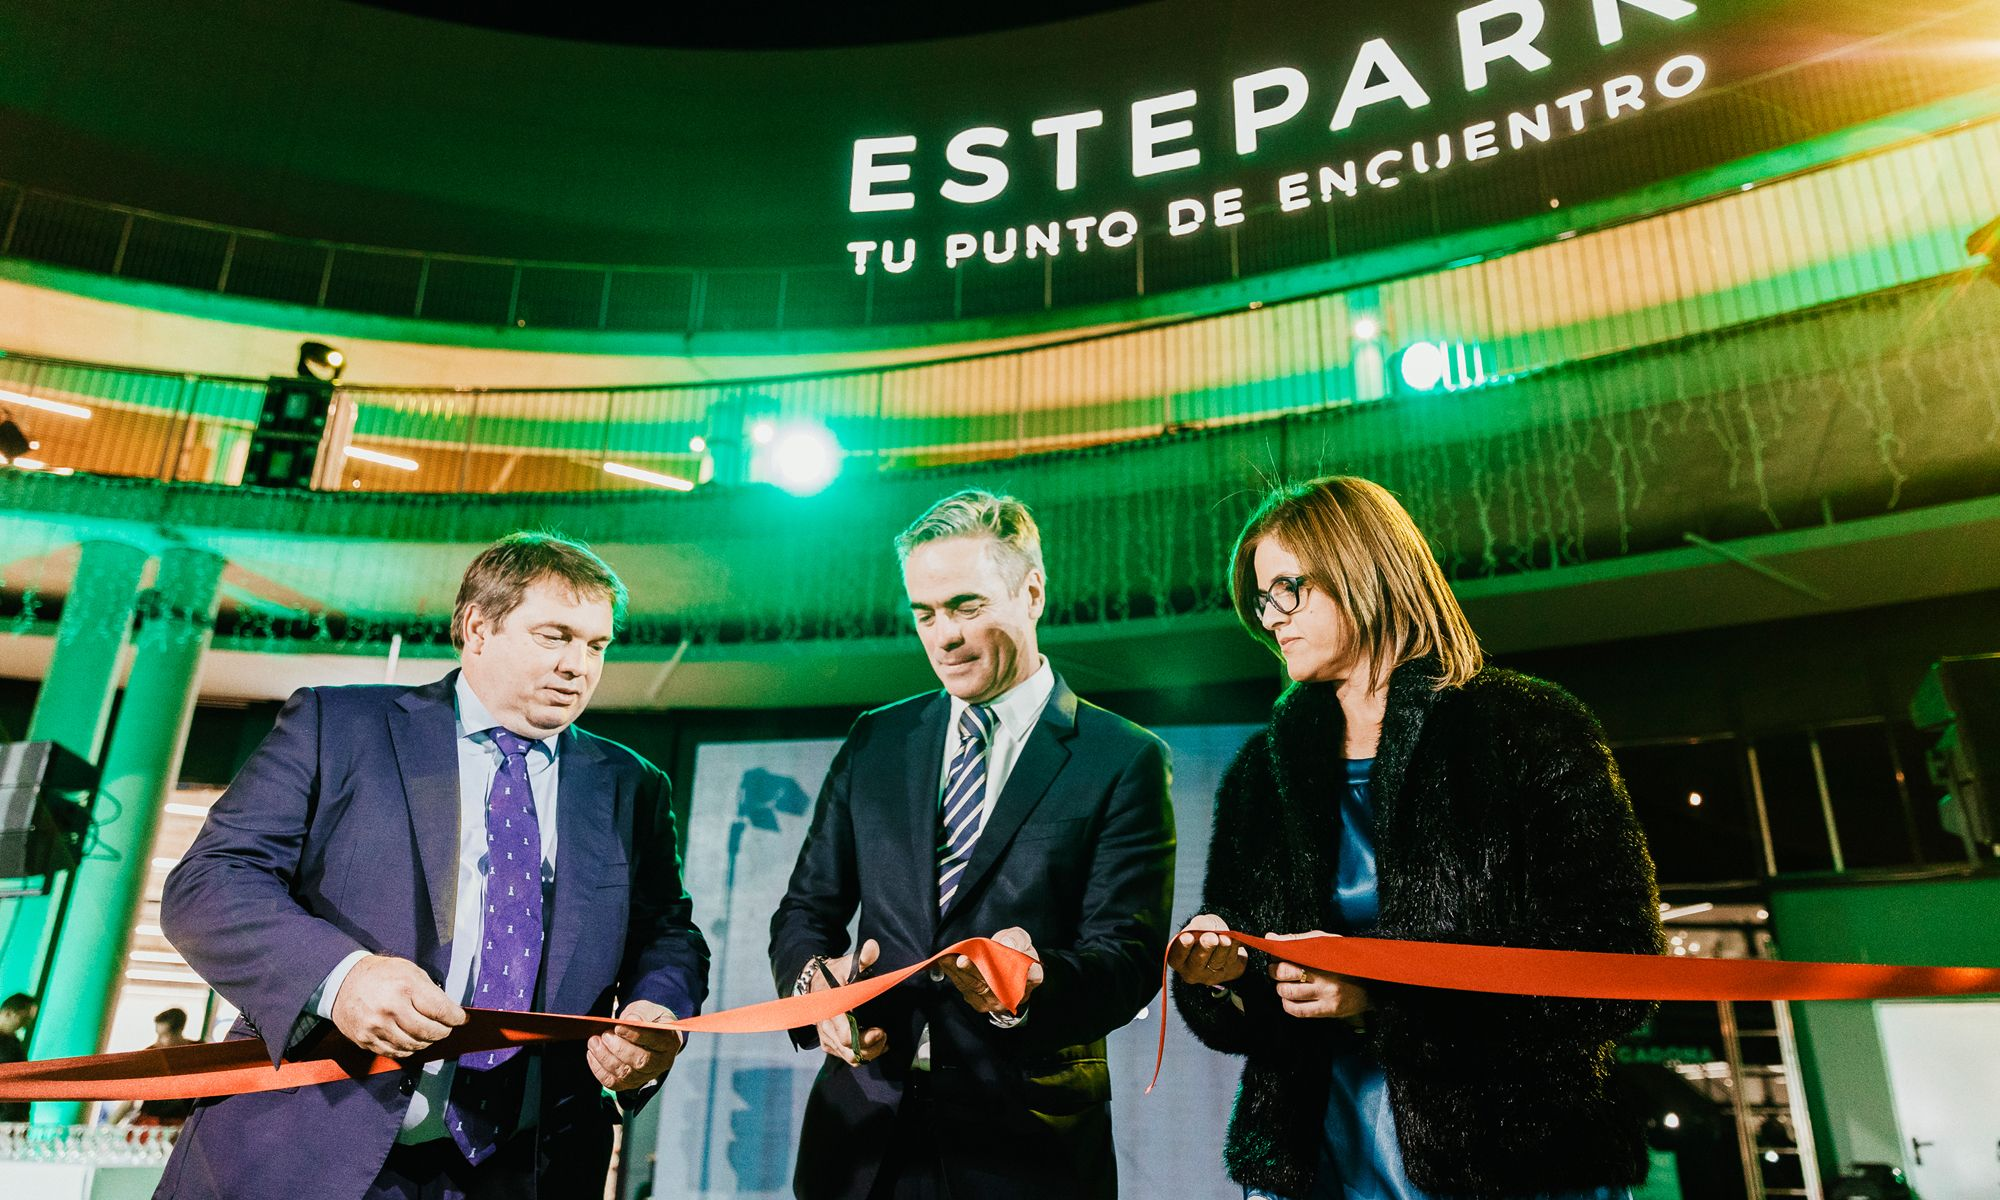 Image of the opening of the shopping center Estepark